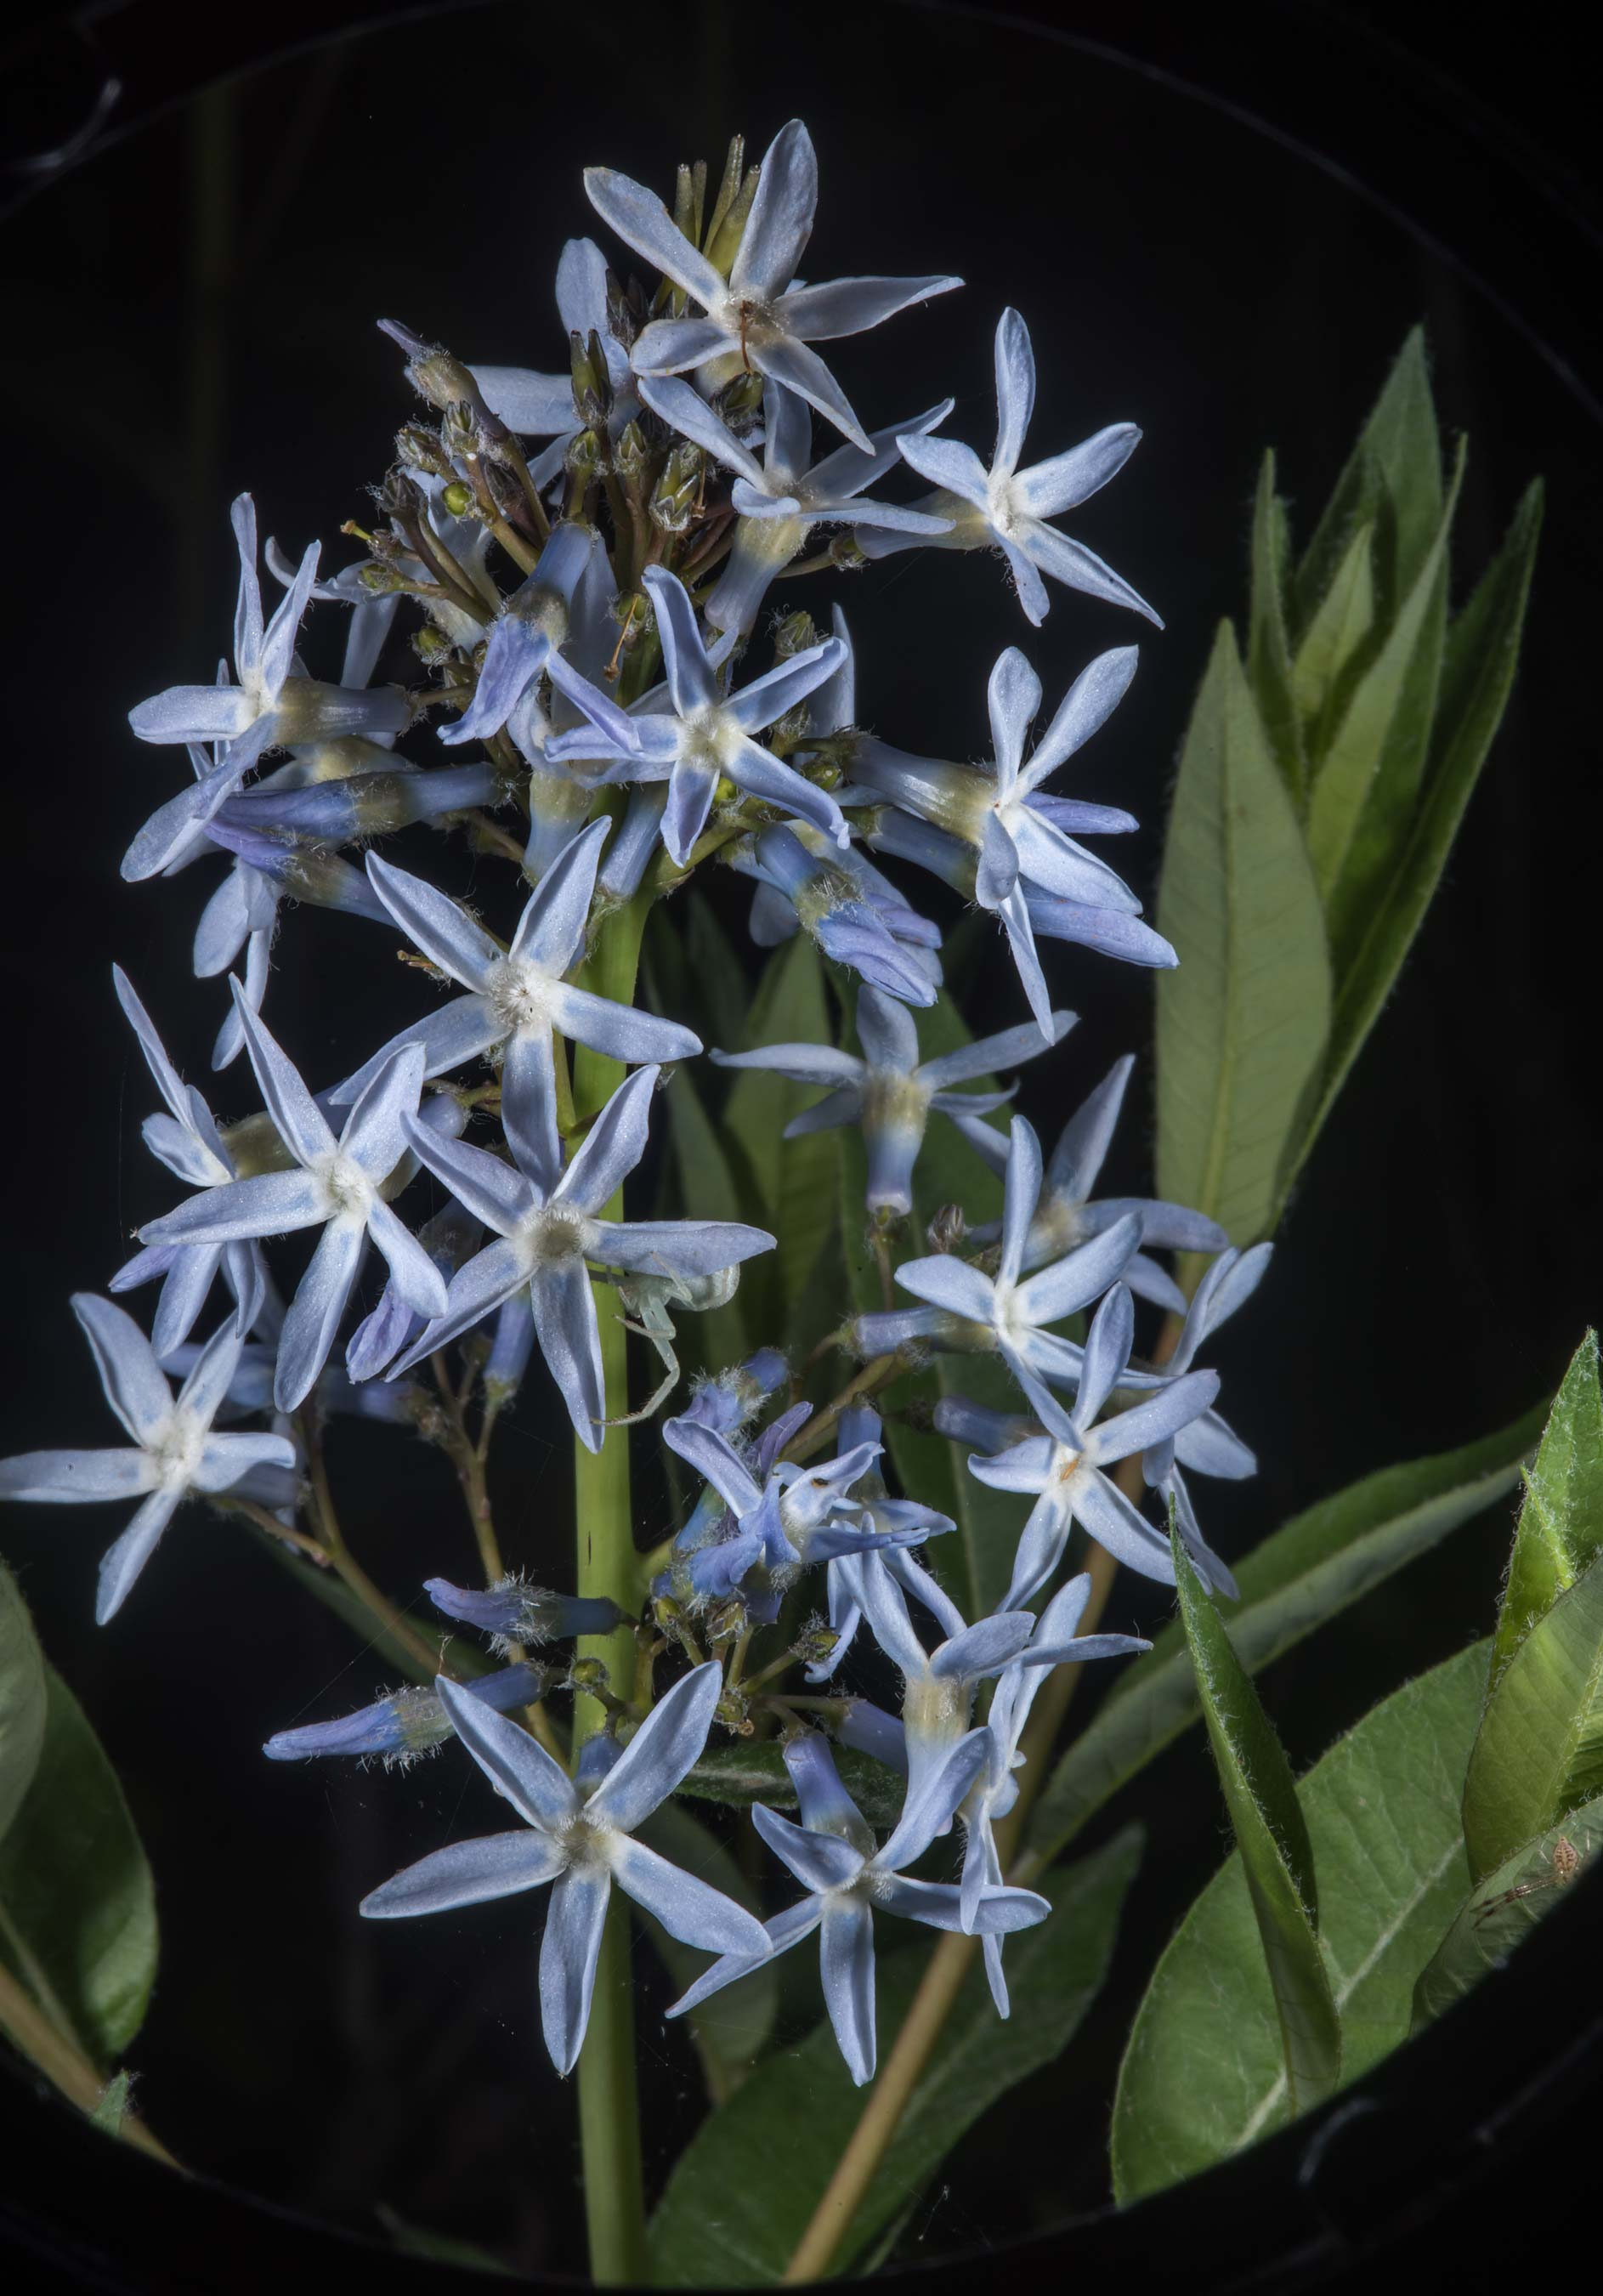 Flowers of Showy blue star (Amsonia illustris) on...of Somerville Lake State Park. Texas